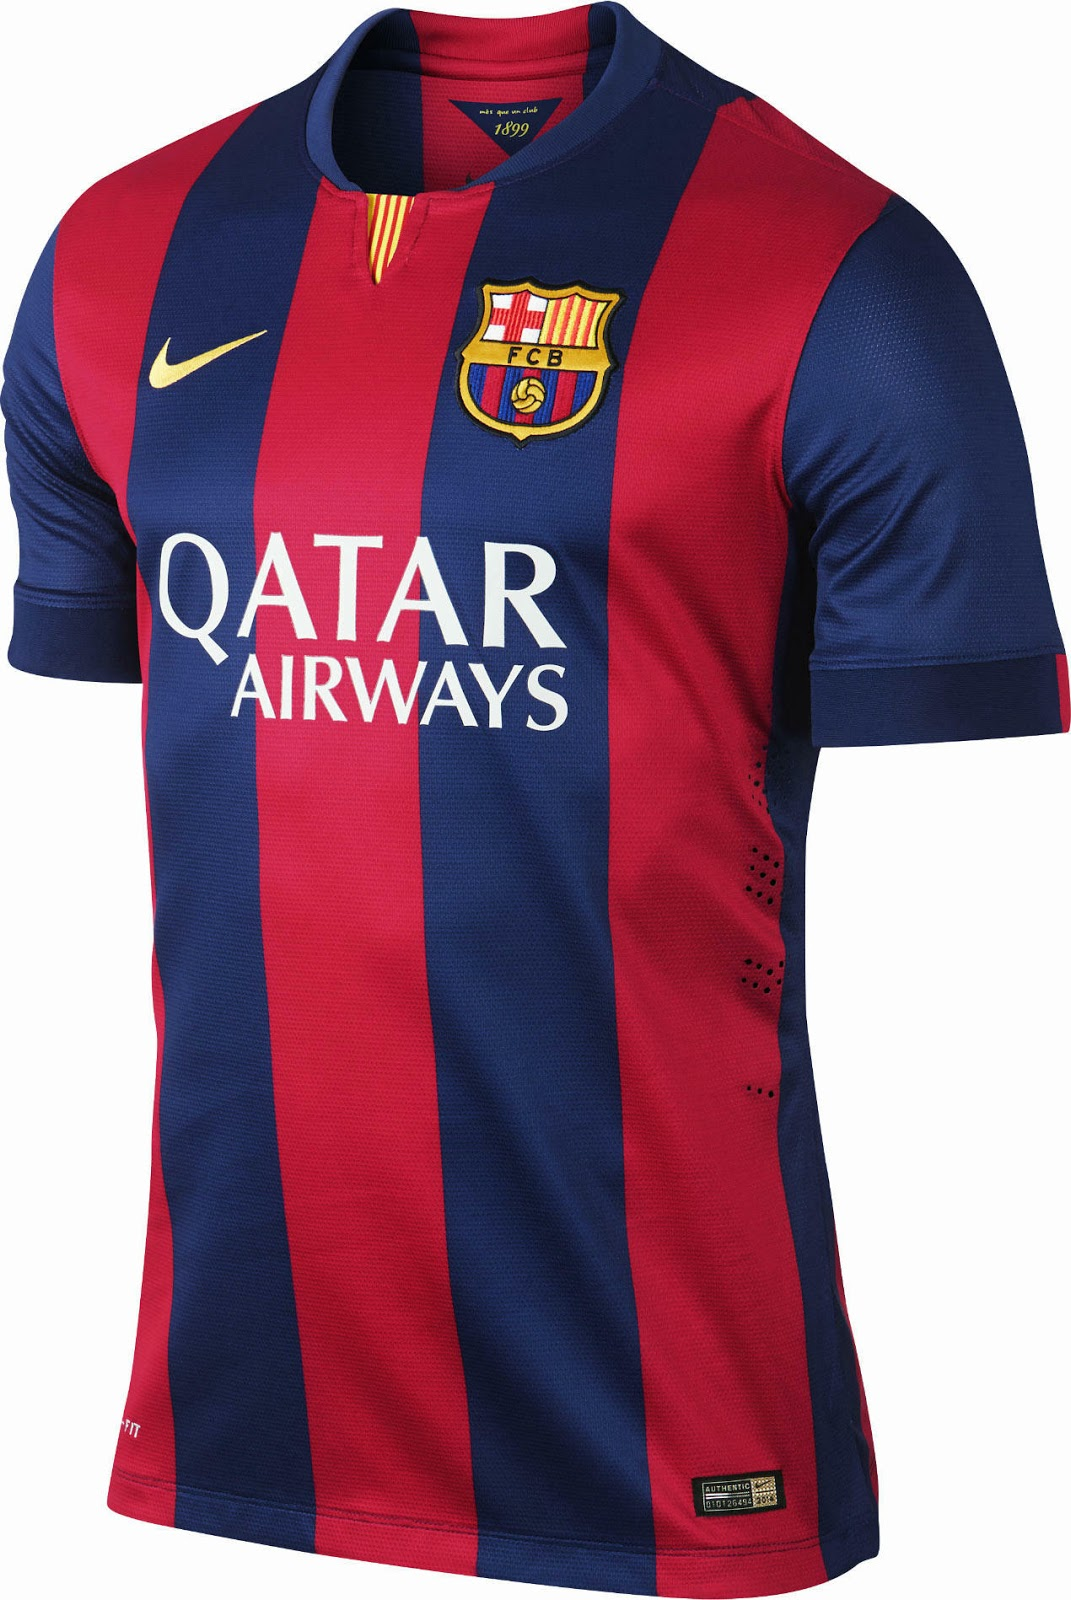 Saudi arabia bans barcelona shirts with qatar airways logo for Oficina qatar barcelona